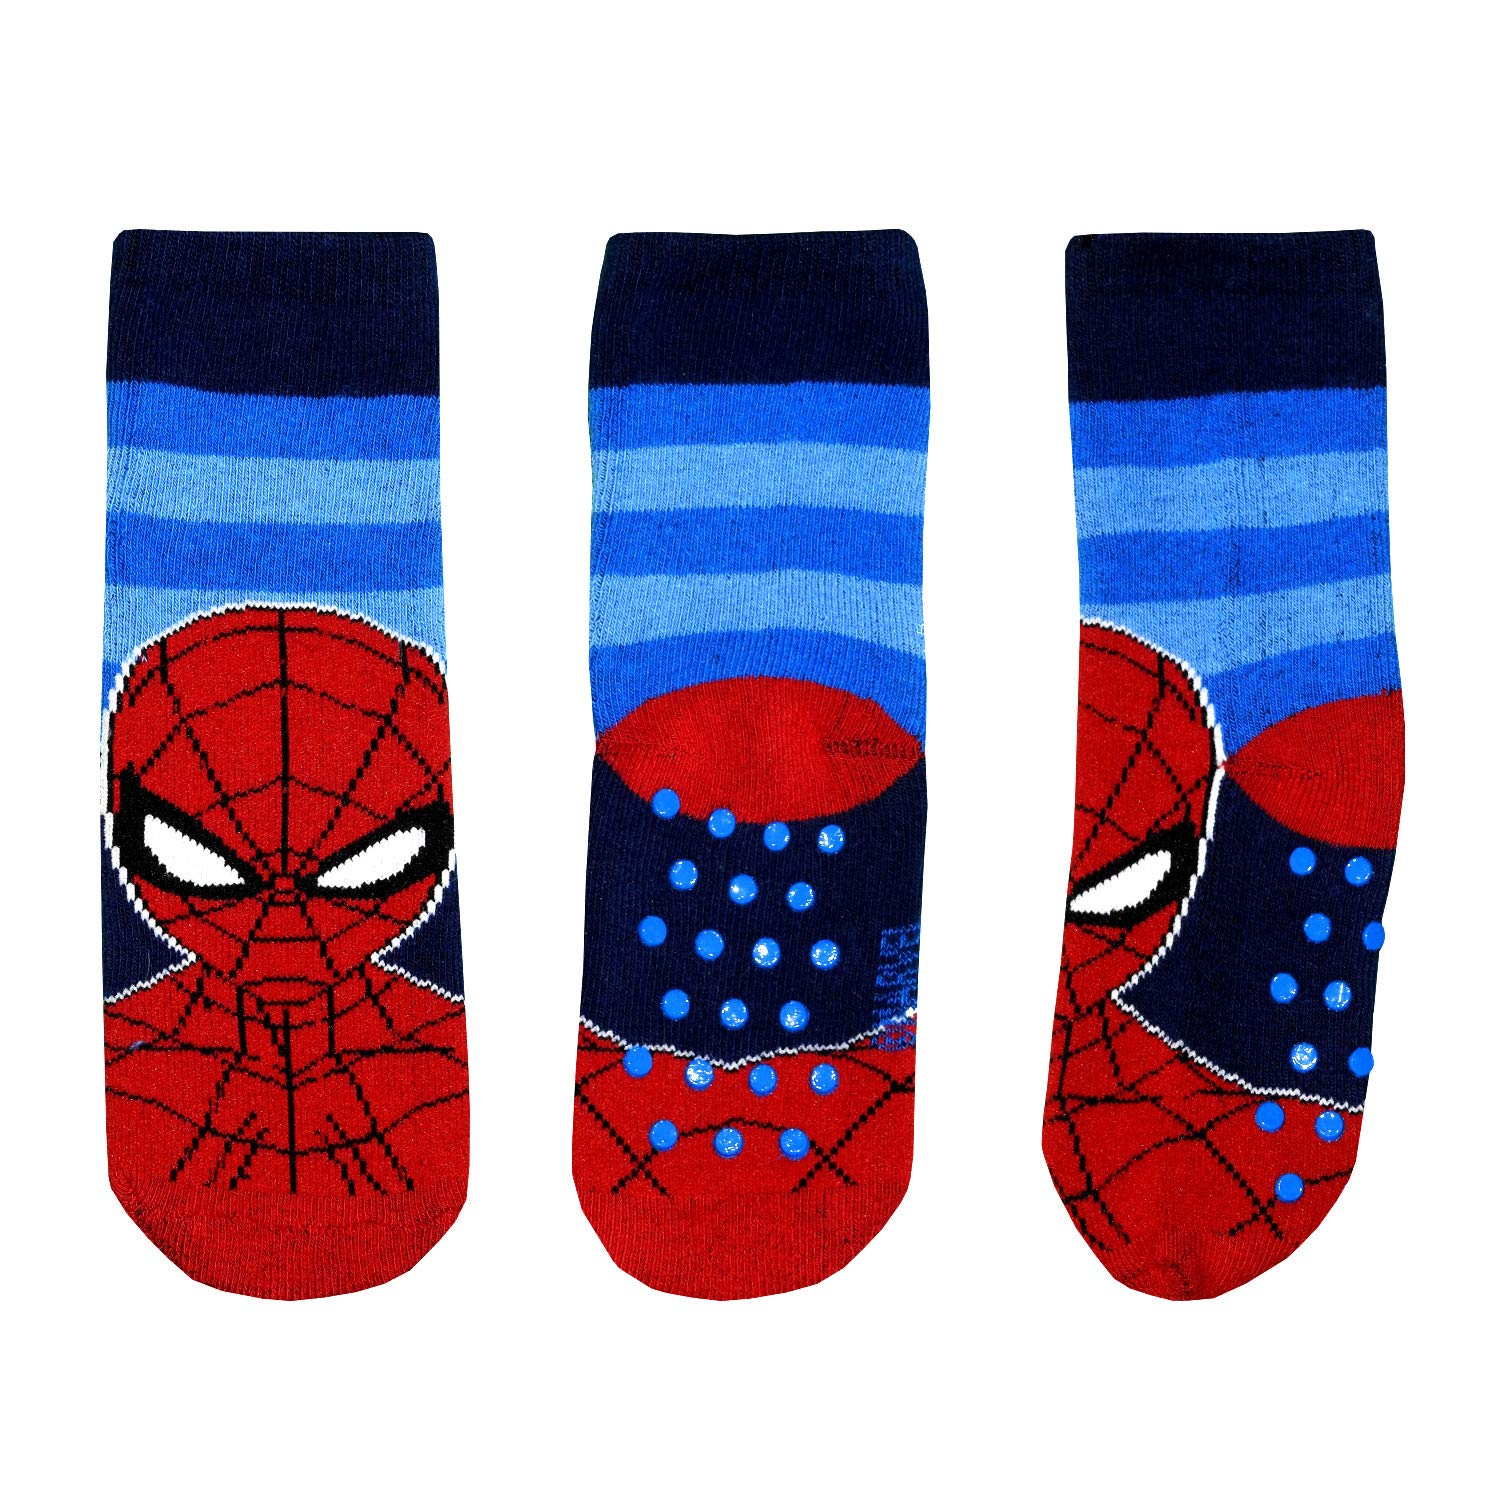 Non Slip Grip Socks Boys Kids Children Spiderman 2-7 Years Cotton Red Black Blue Disney Marvel …